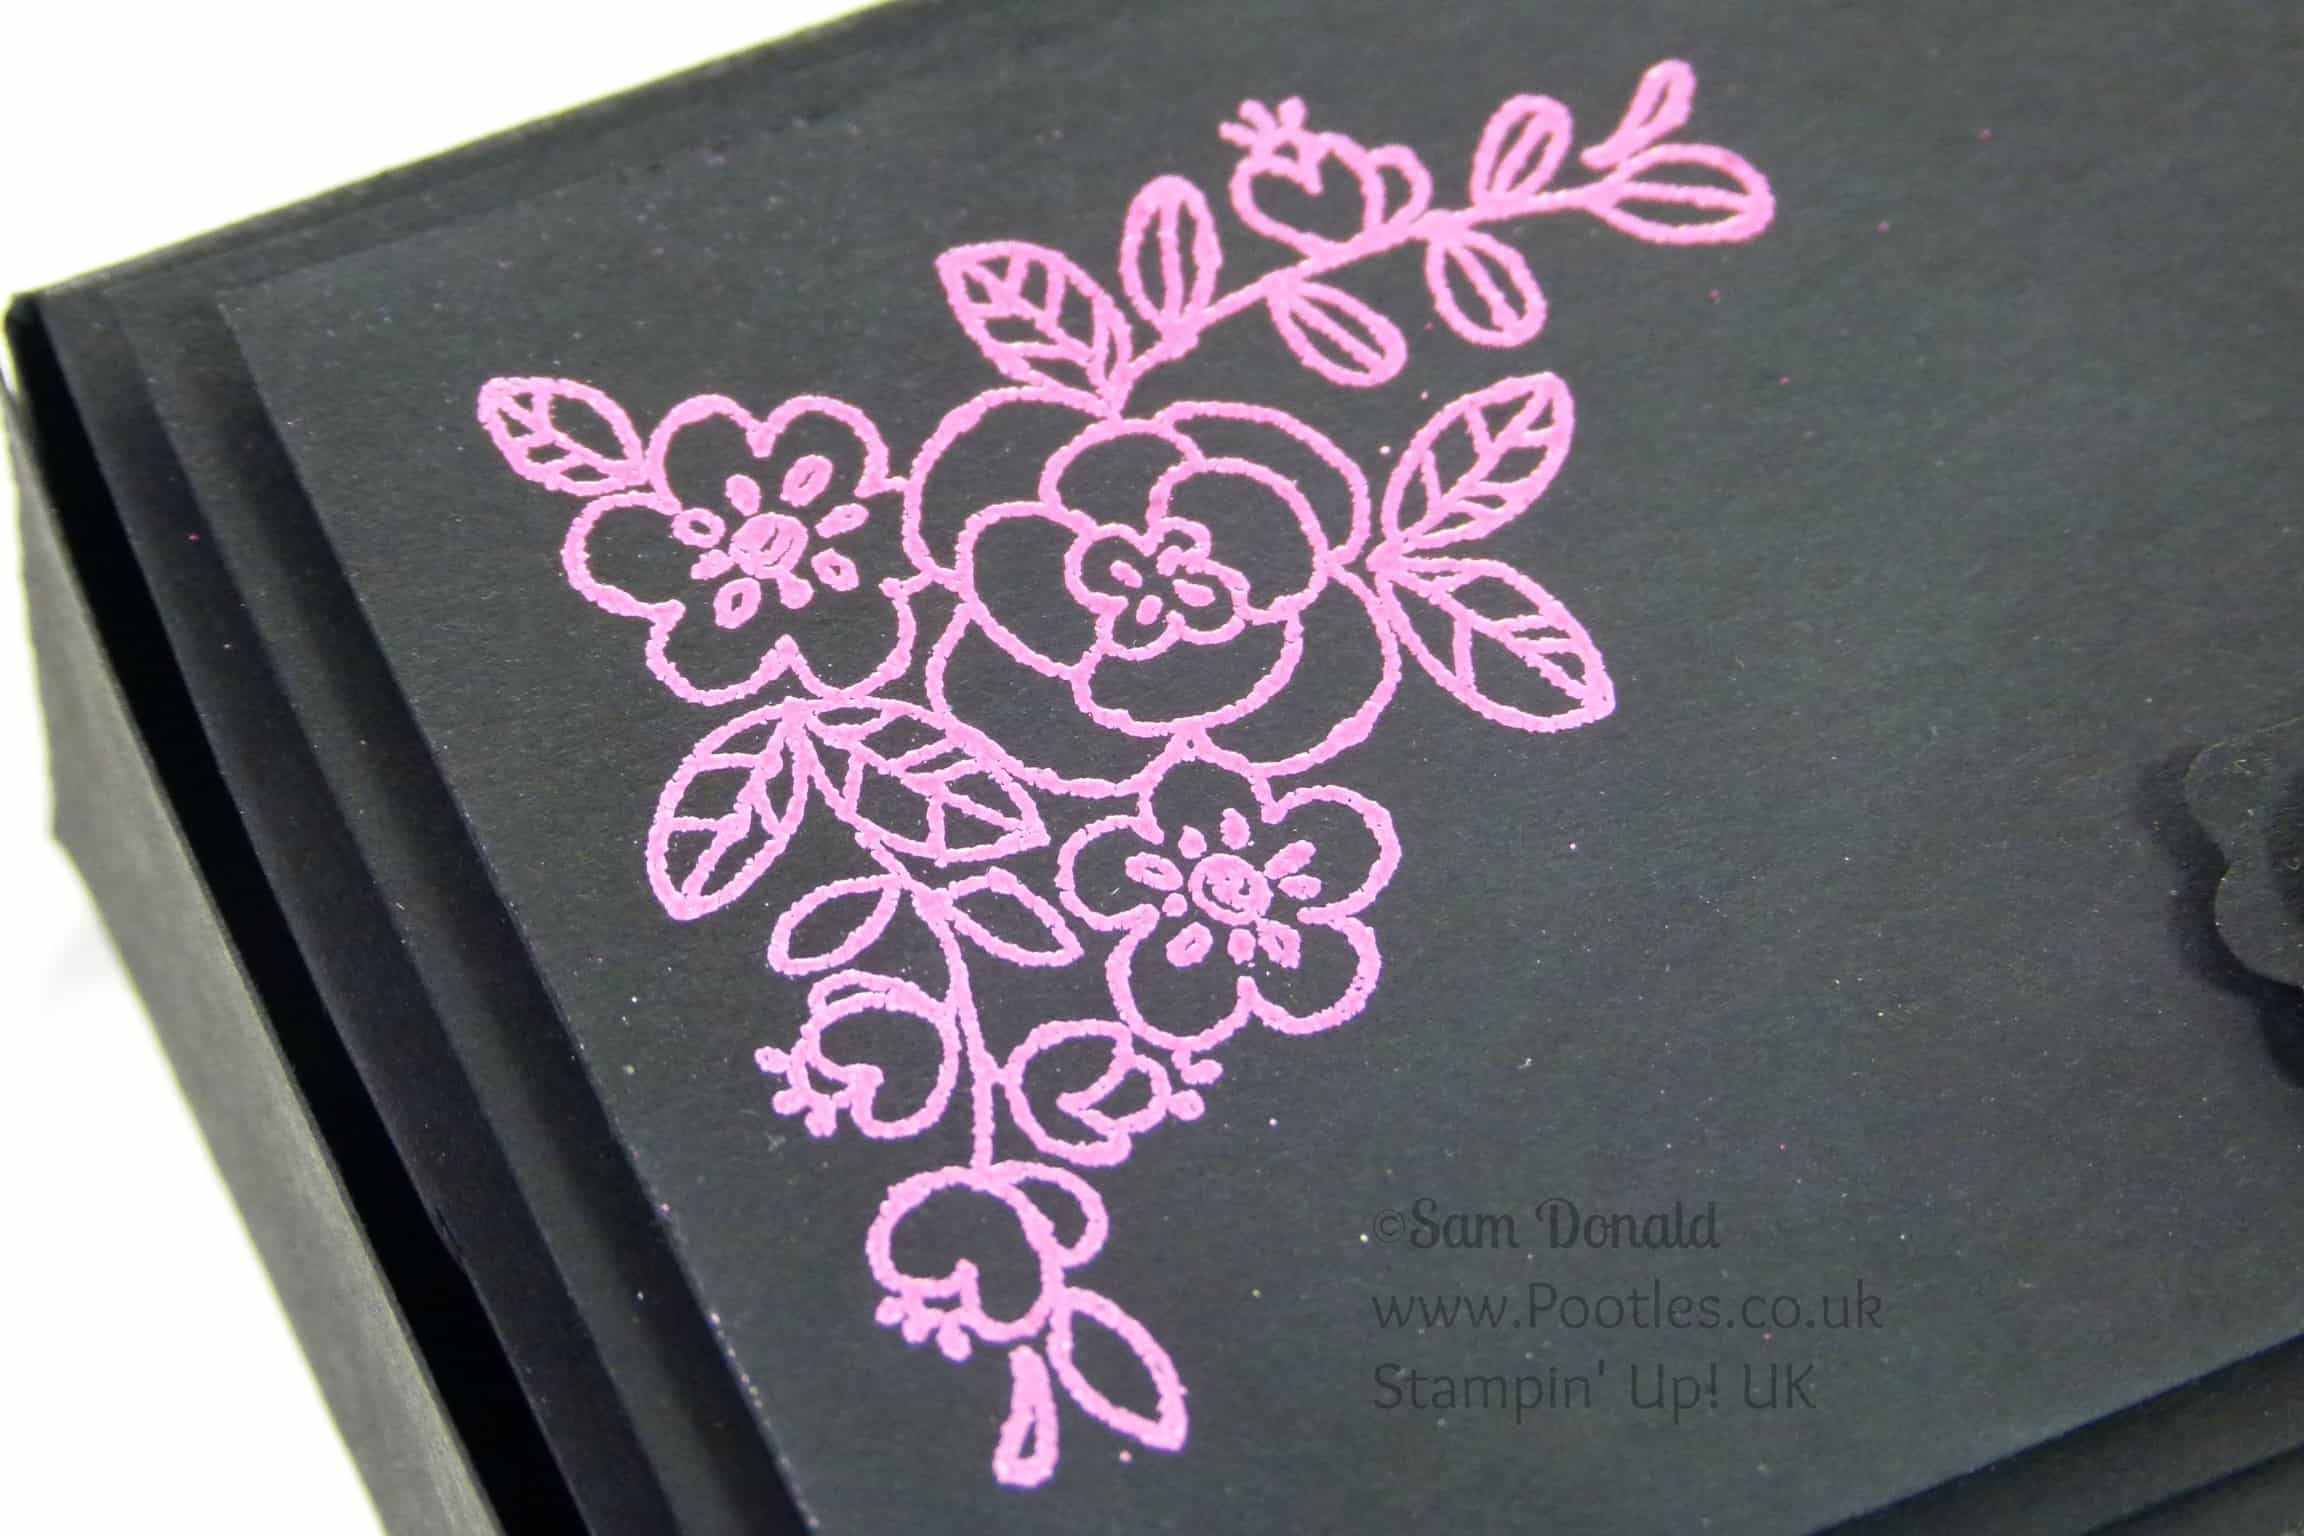 POOTLES Stampin' Up! UK Independent Demonstrator - Heat Embossed Stylish Box Tutorial using Stampin' Up! supplies Embossing Detail